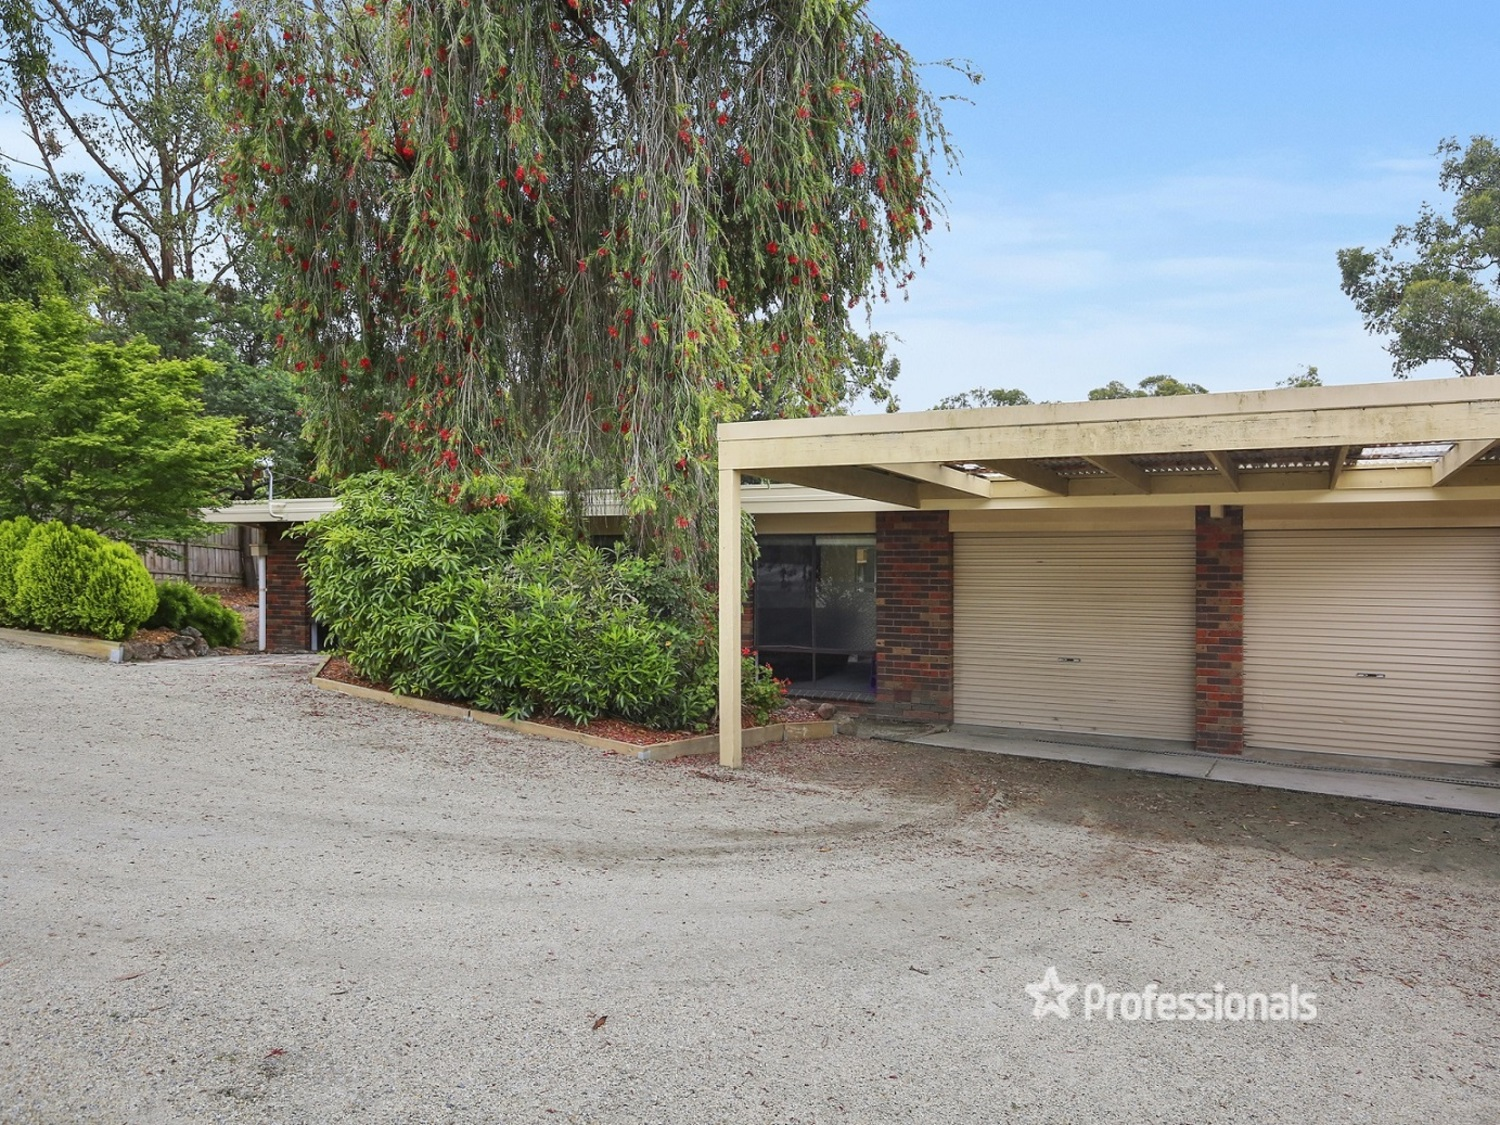 Property Report for 51-53 Fernhill Road, Mount Evelyn VIC 3796